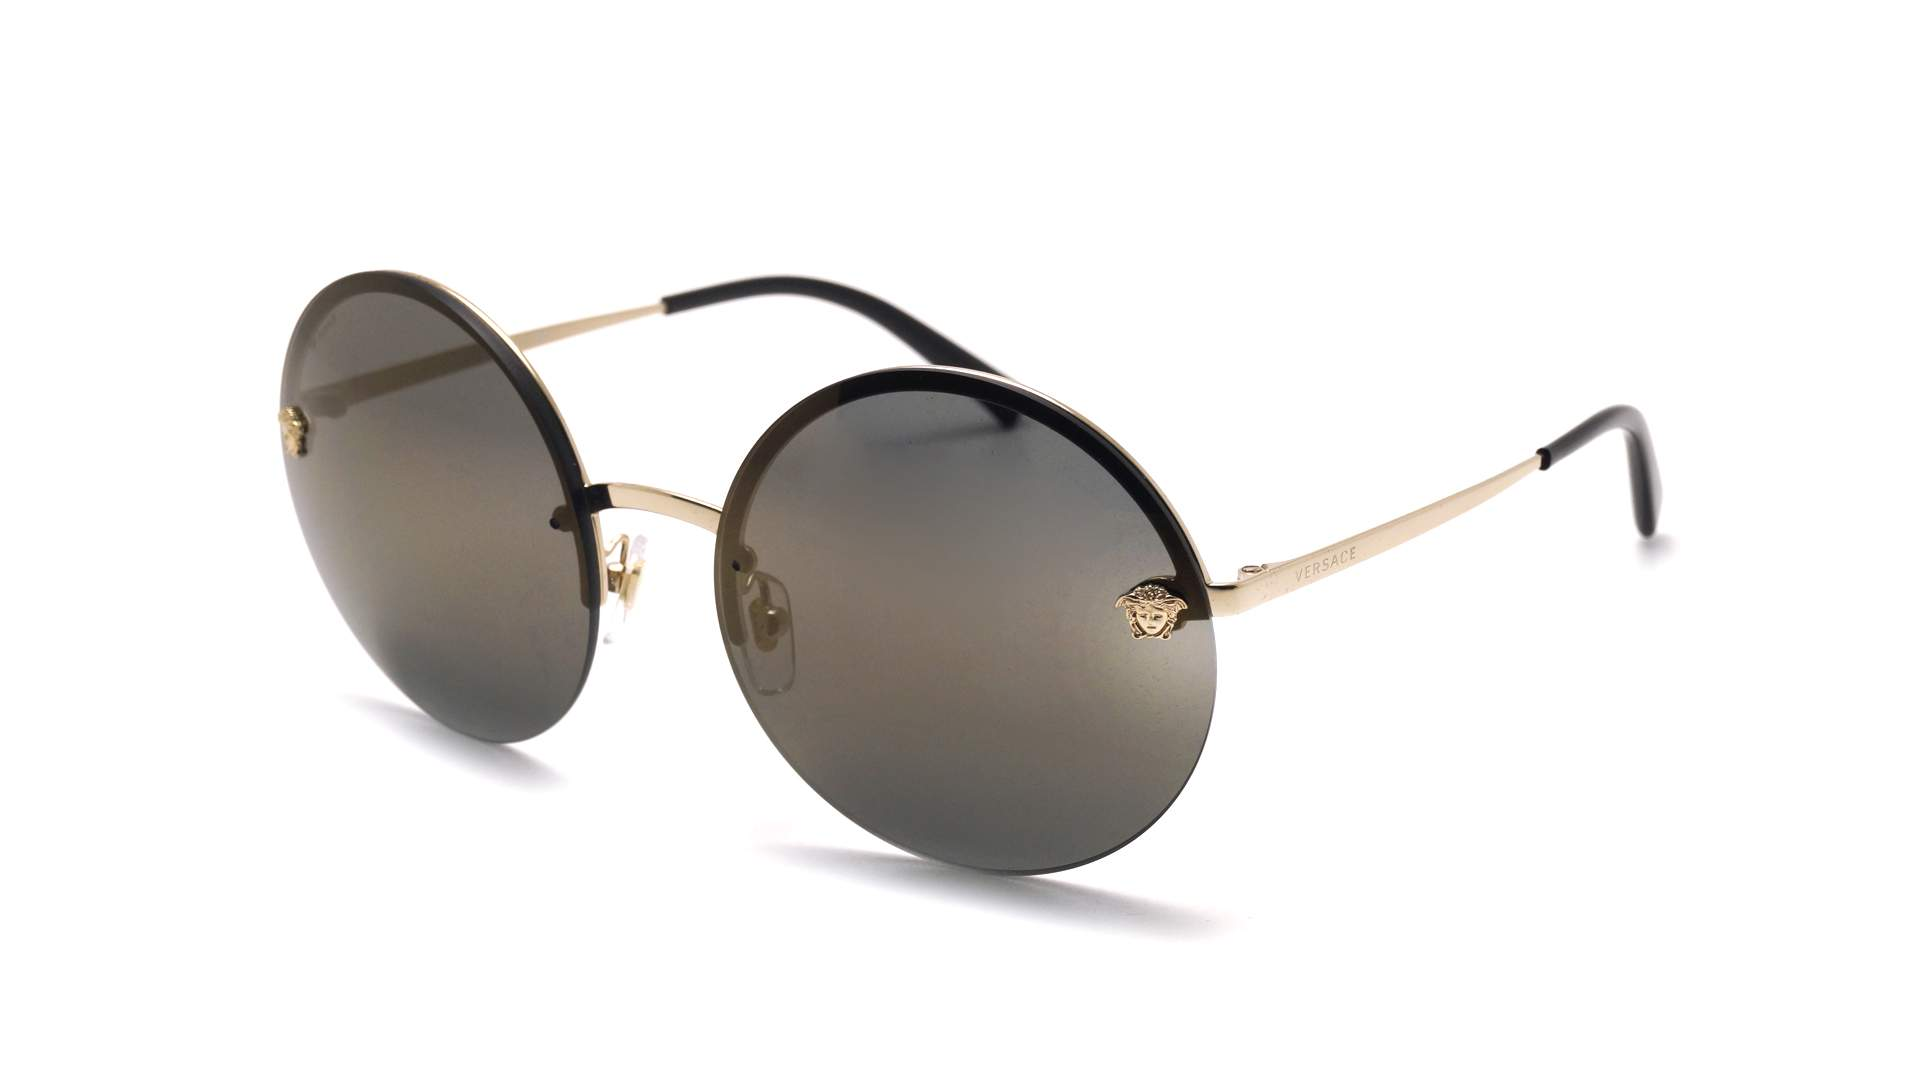 74541bed1674 Sunglasses Versace VE2176 1252 4T 59-16 Gold Large Mirror